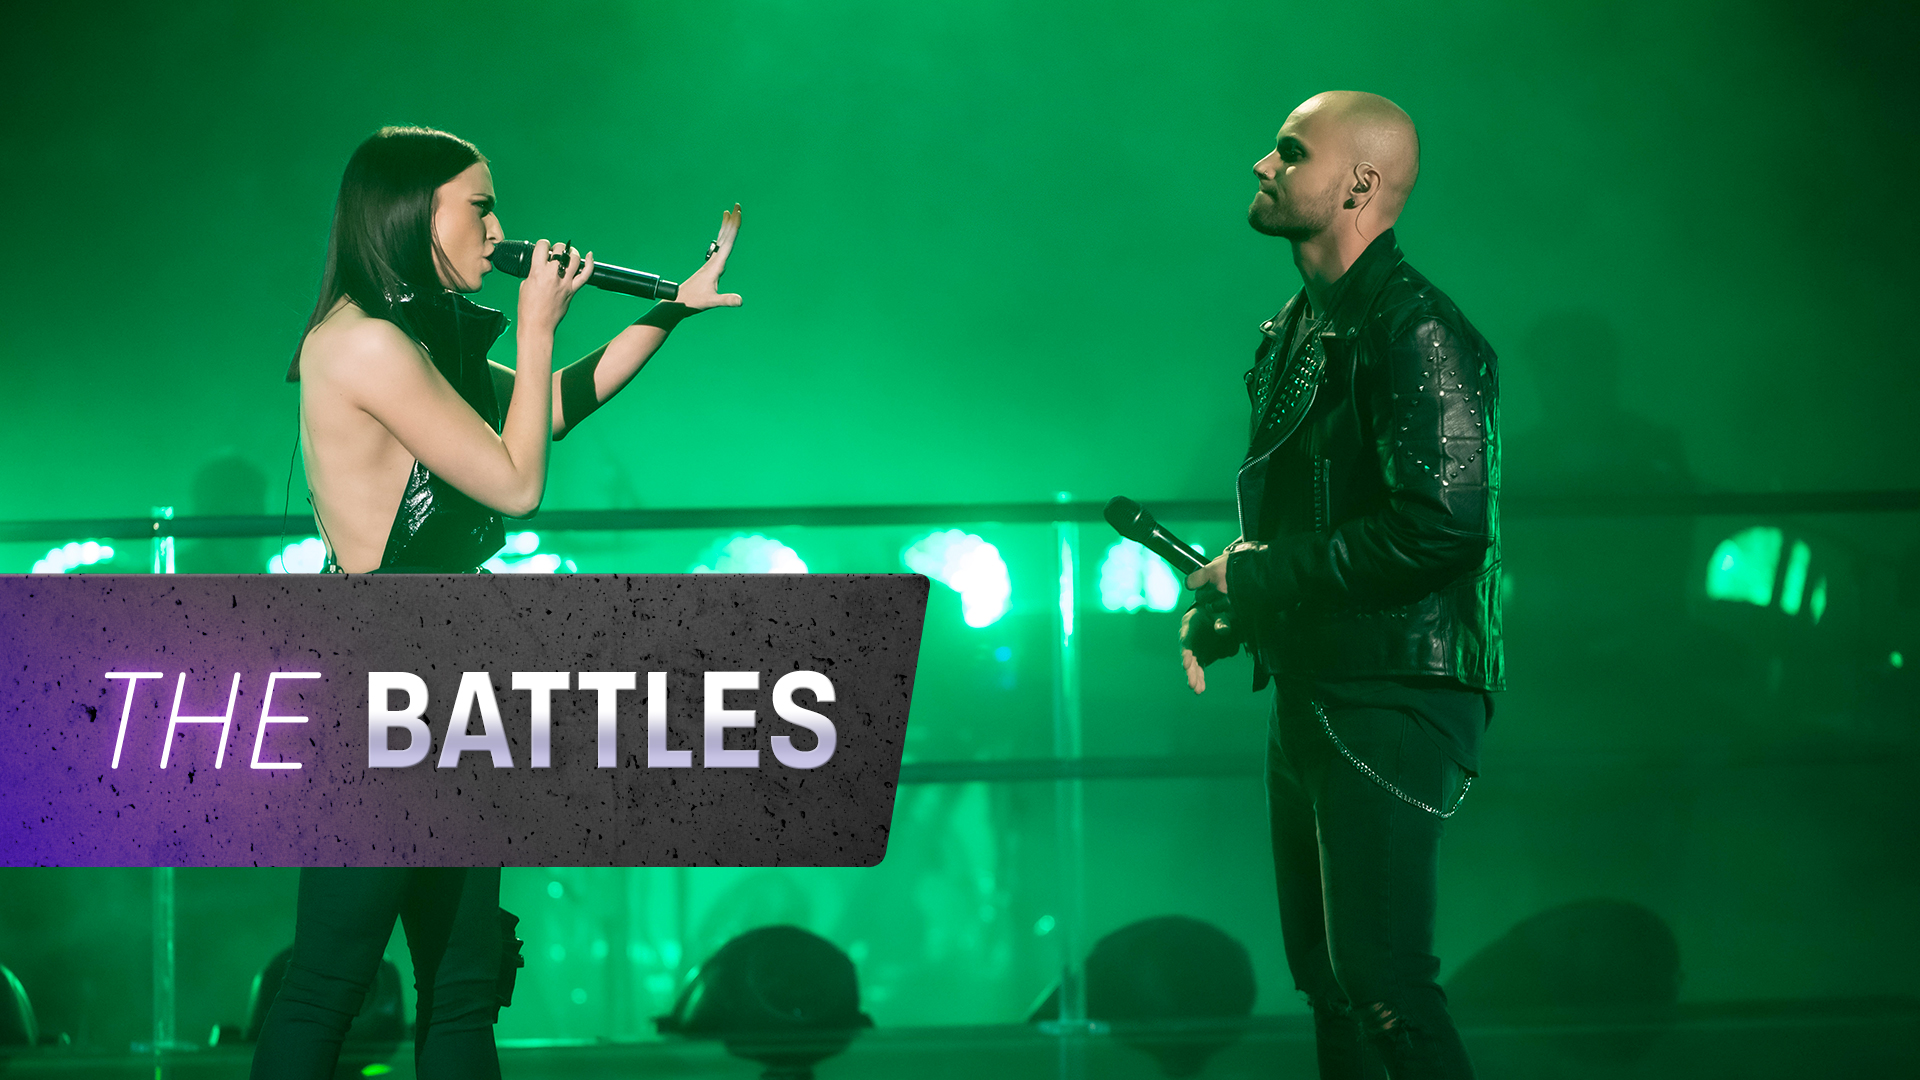 The Battles: Mark vs Emma 'You Oughta Know'